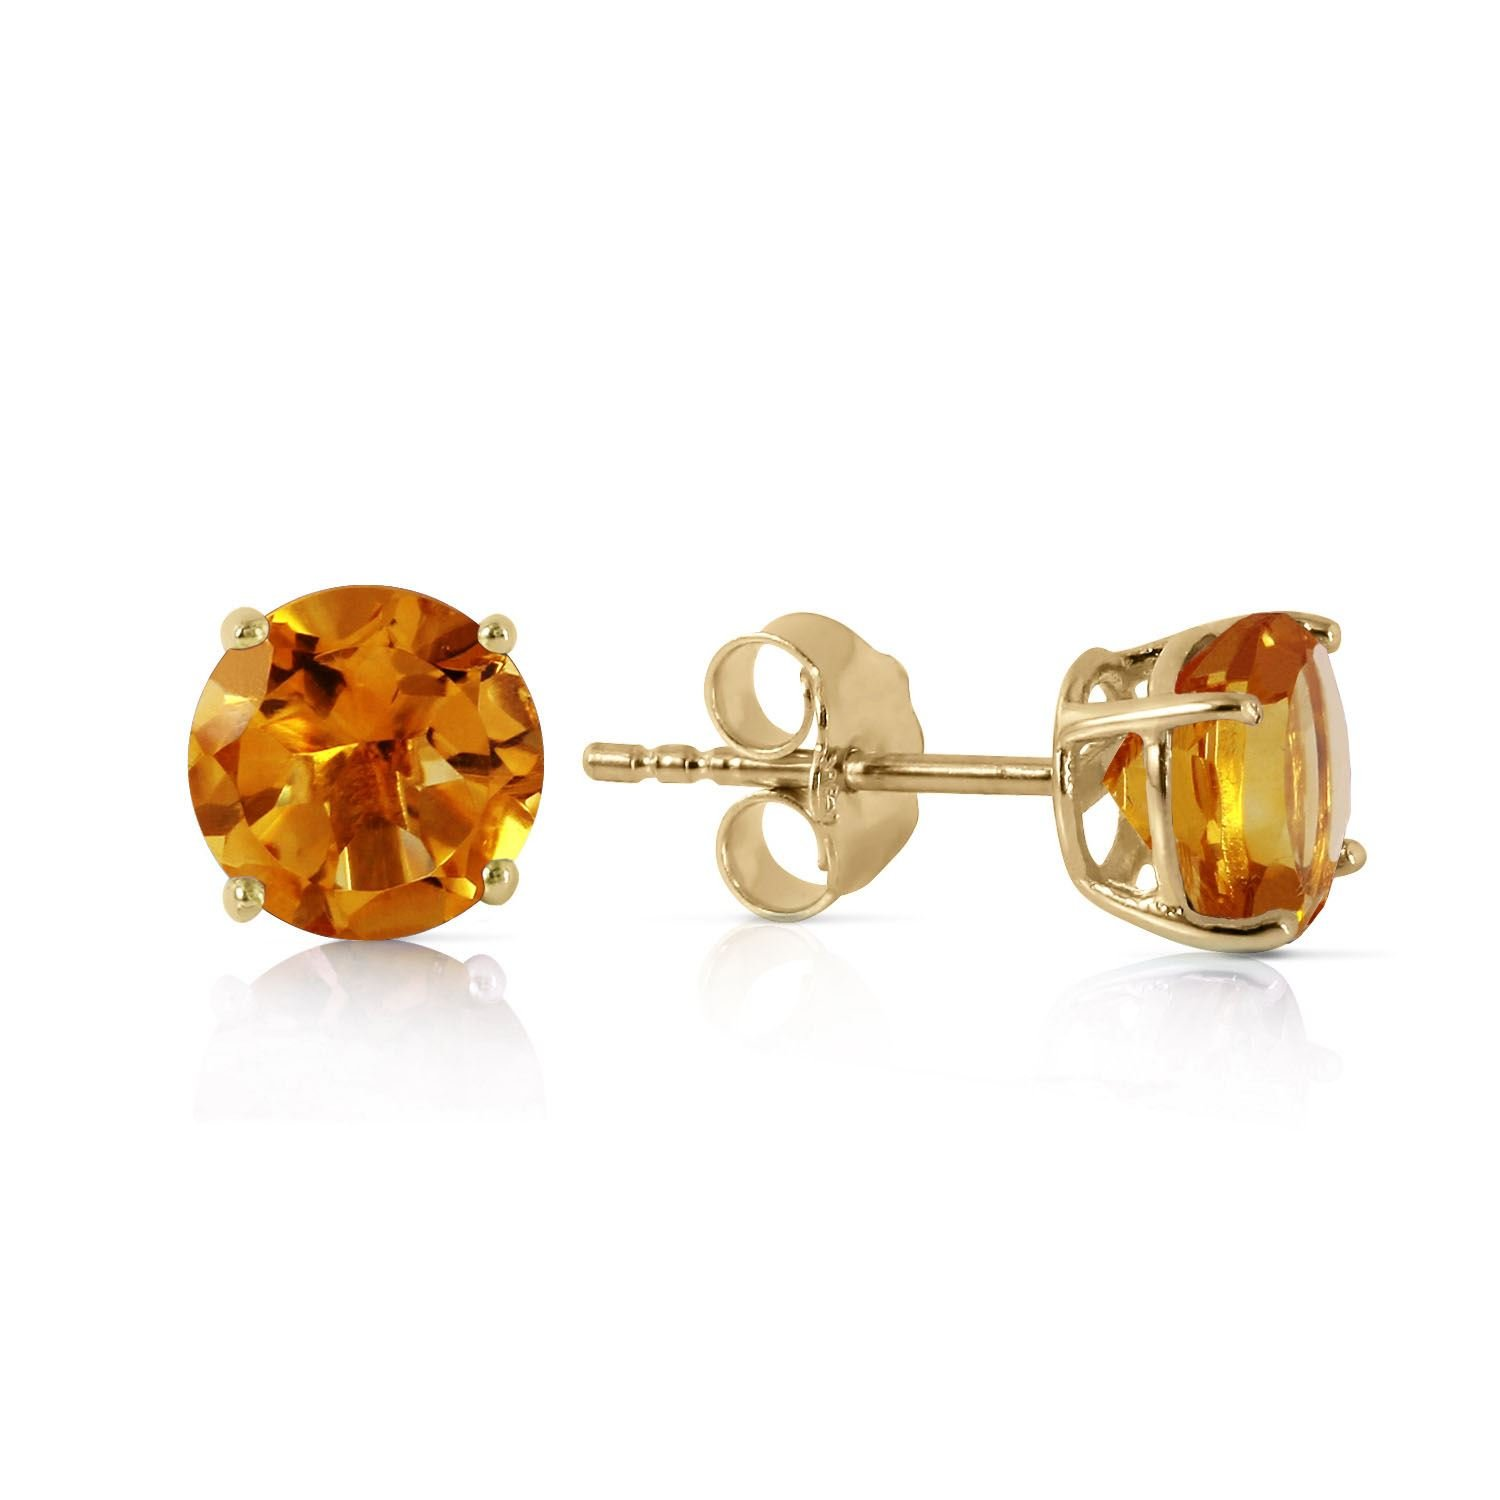 ALARRI 0.95 Carat 14K Solid Gold Somebody To Love Citrine Earrings